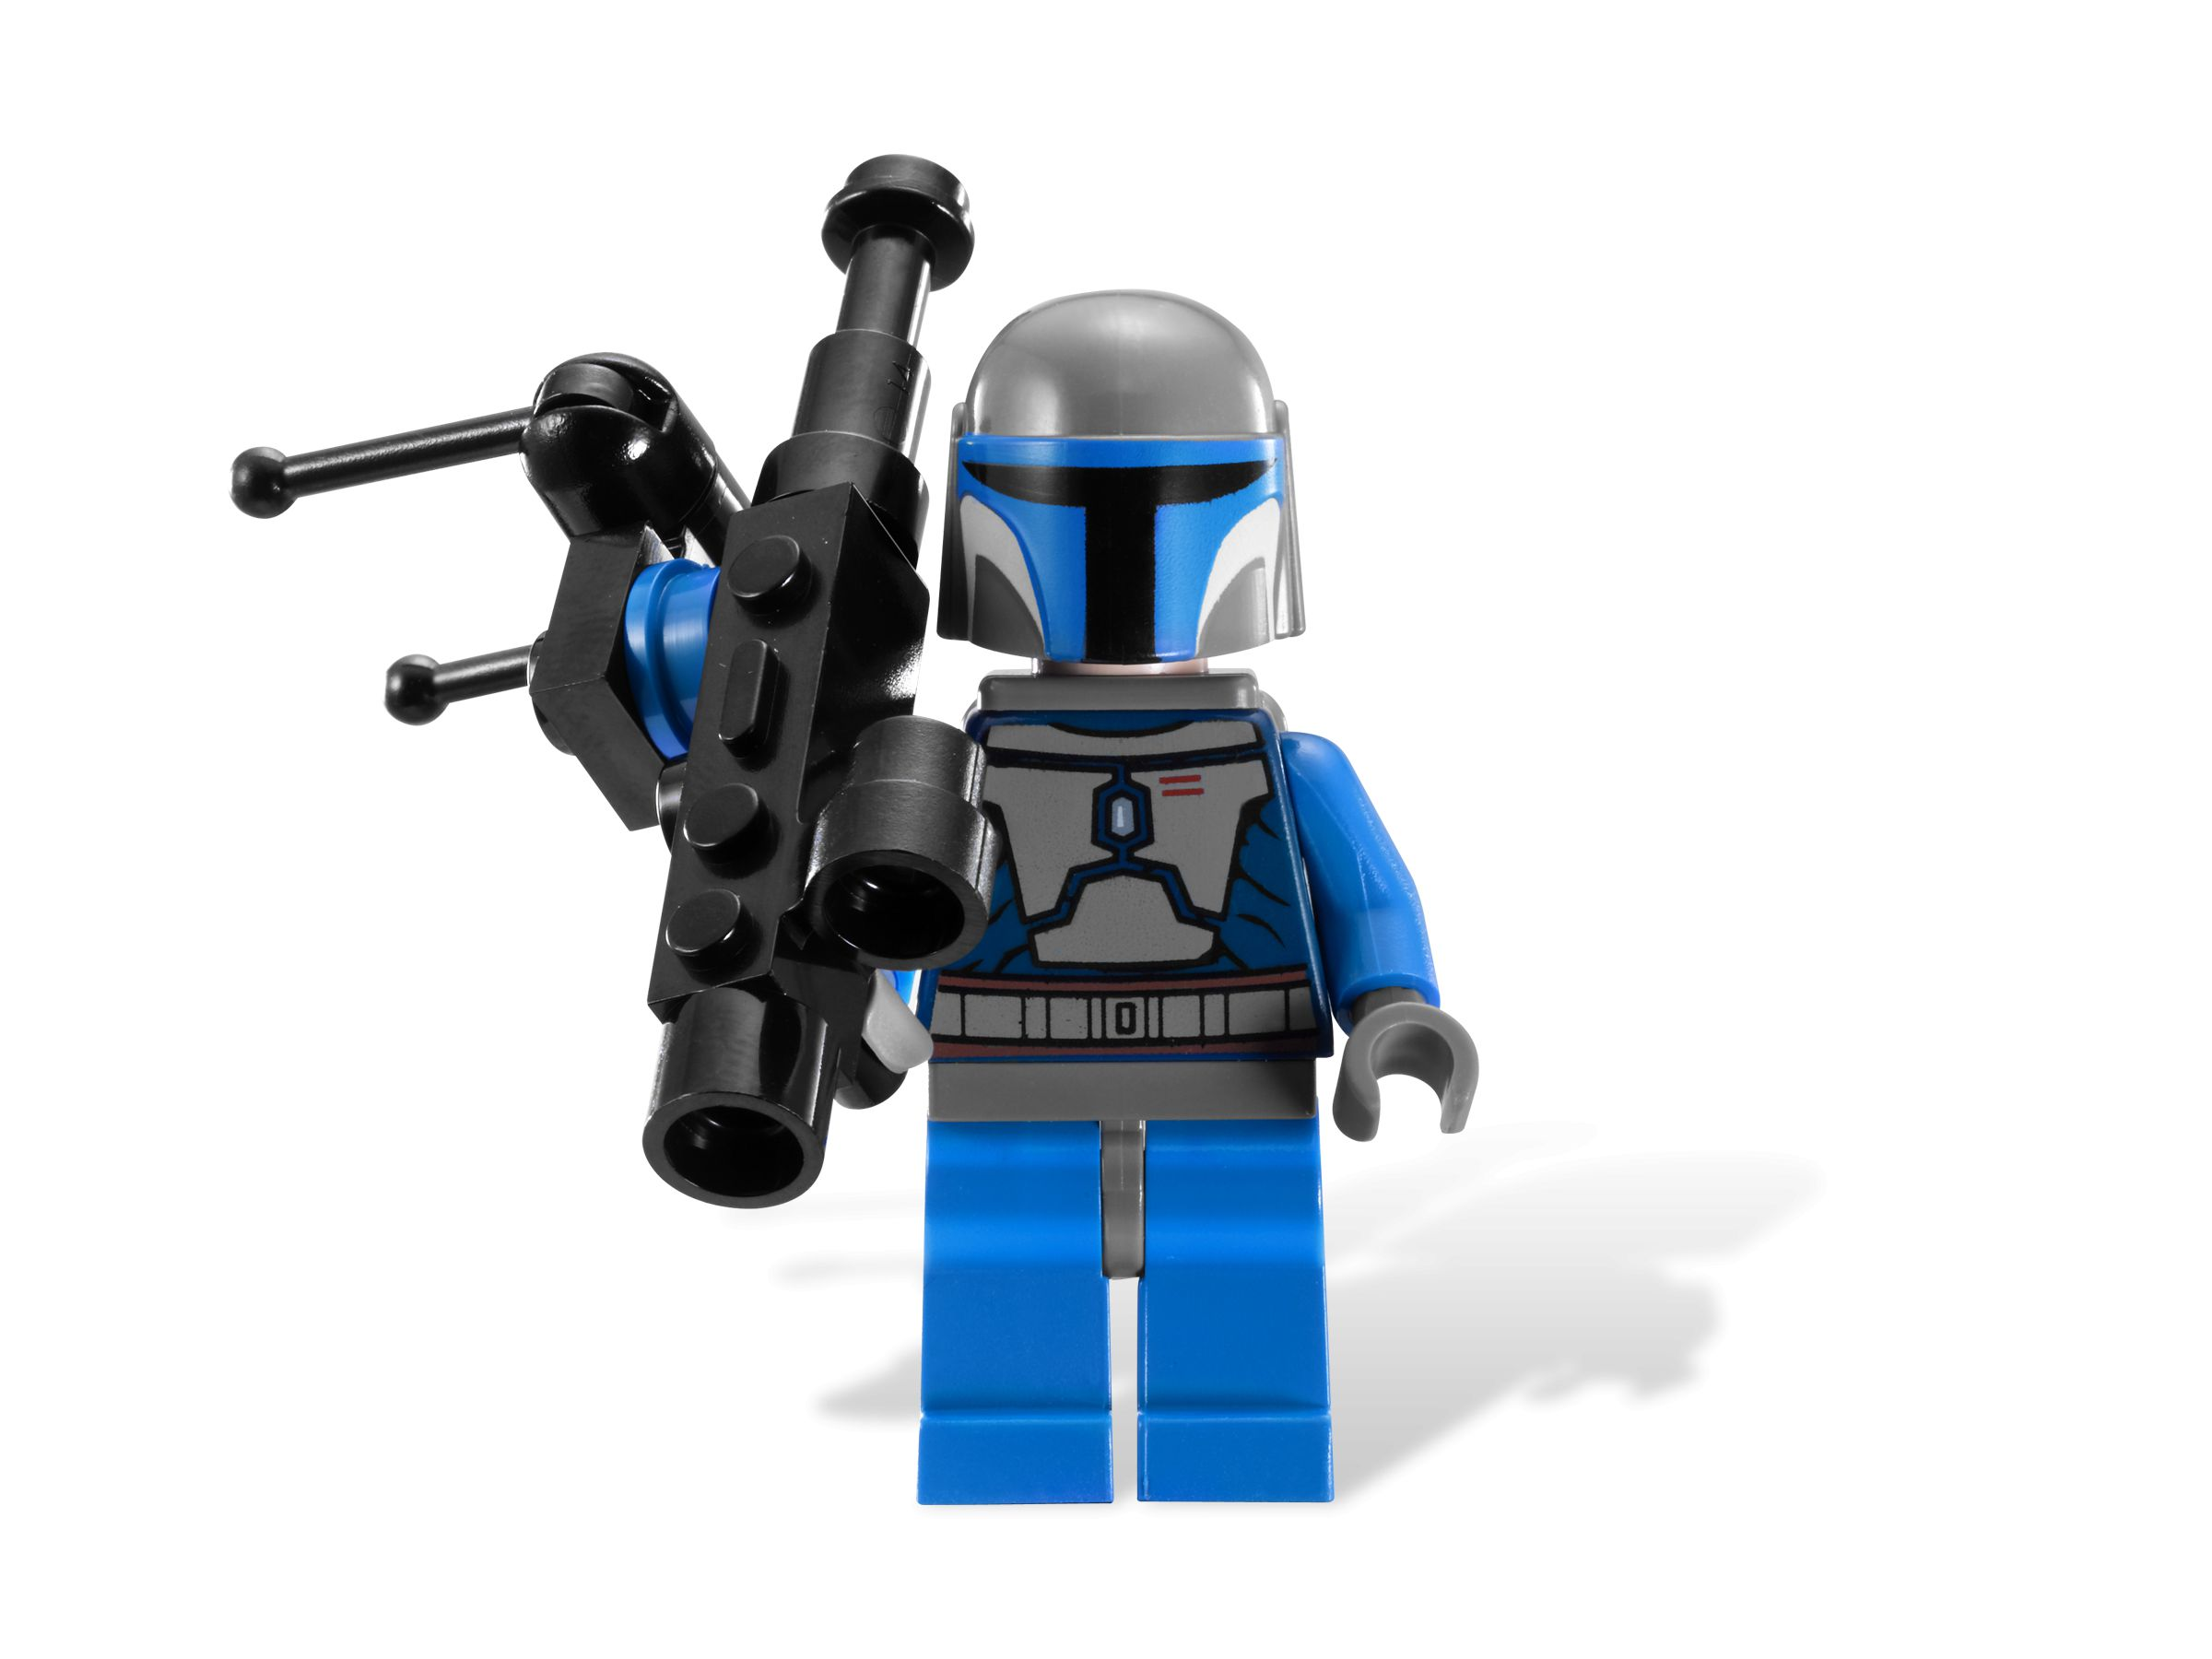 LEGO Star Wars 7914 Mandalorian Battle Pack LEGO_7914_alt5.jpg